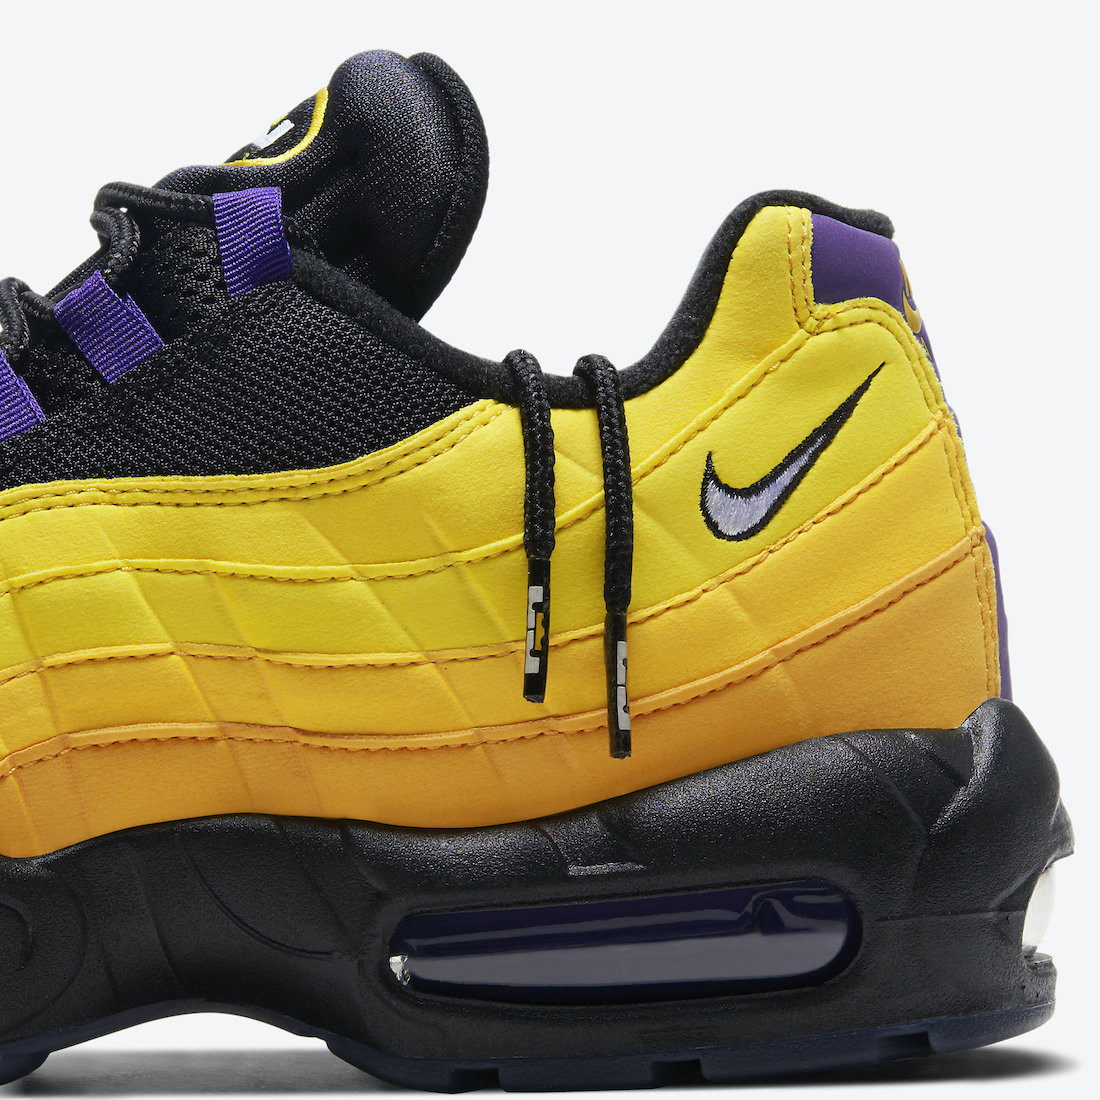 Nike-Air-Max-95-LeBron-Lakers-CZ3624-001-Release-Date-13